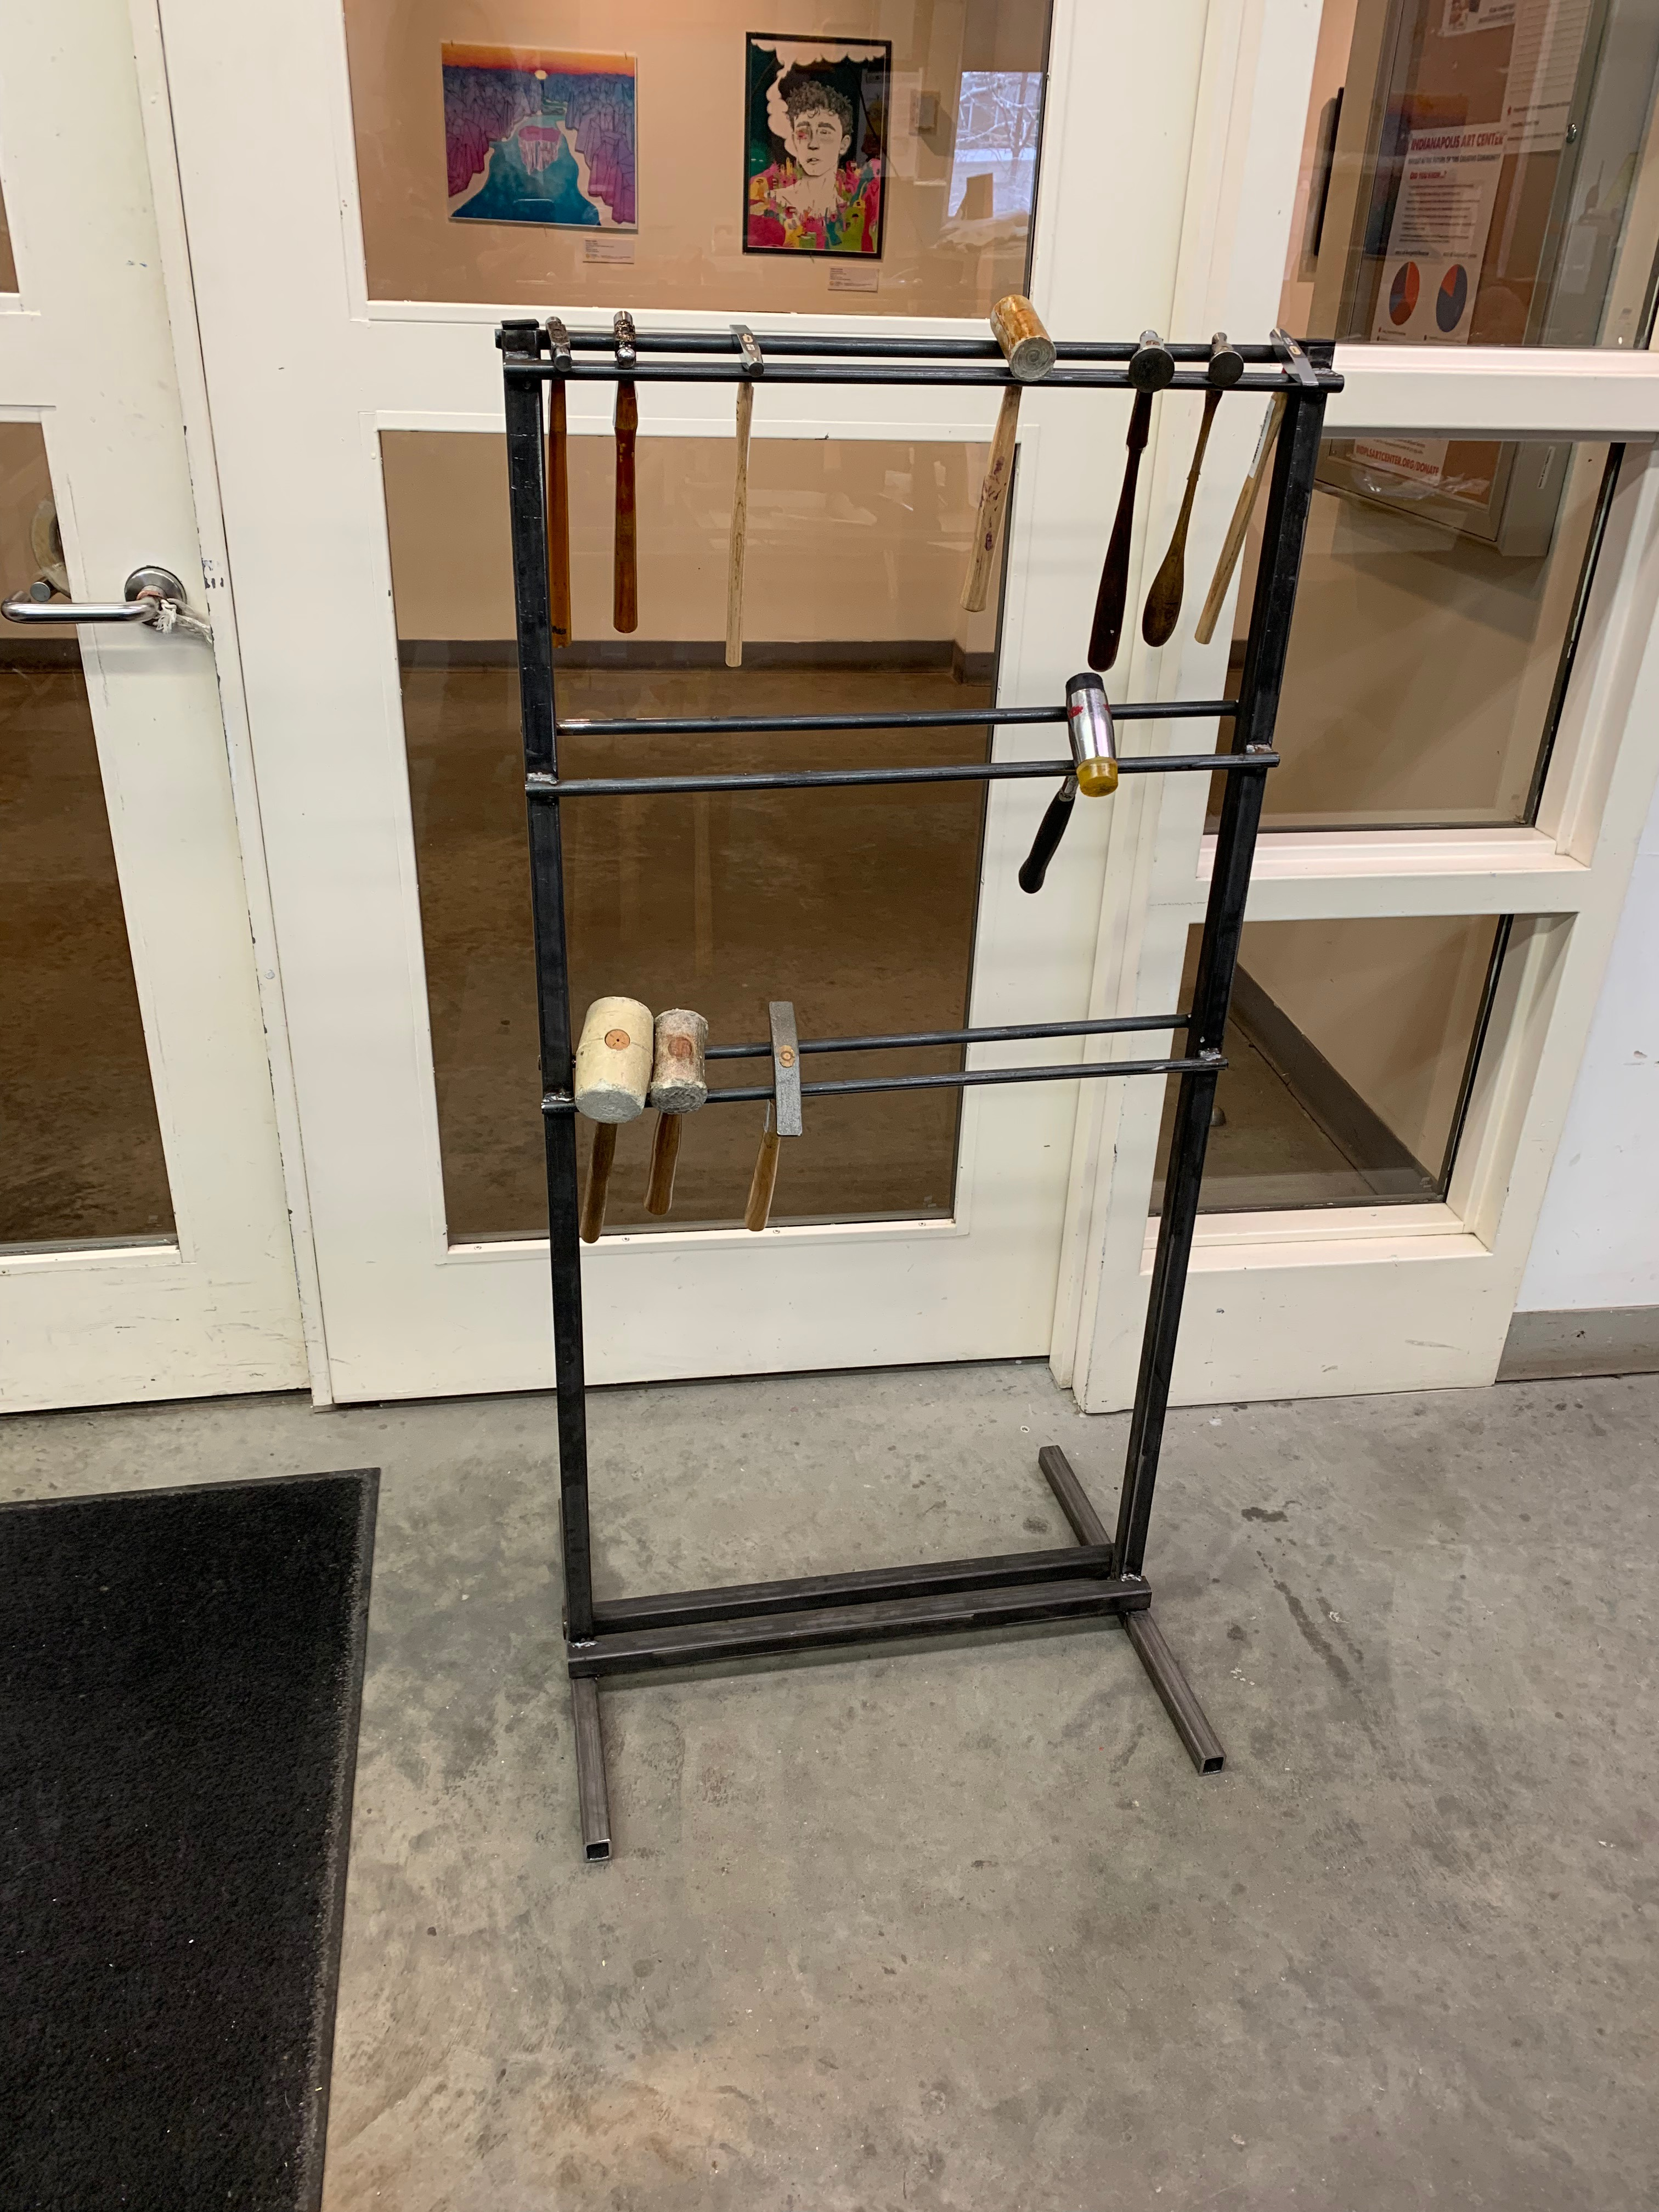 How to Make a Hammer Rack